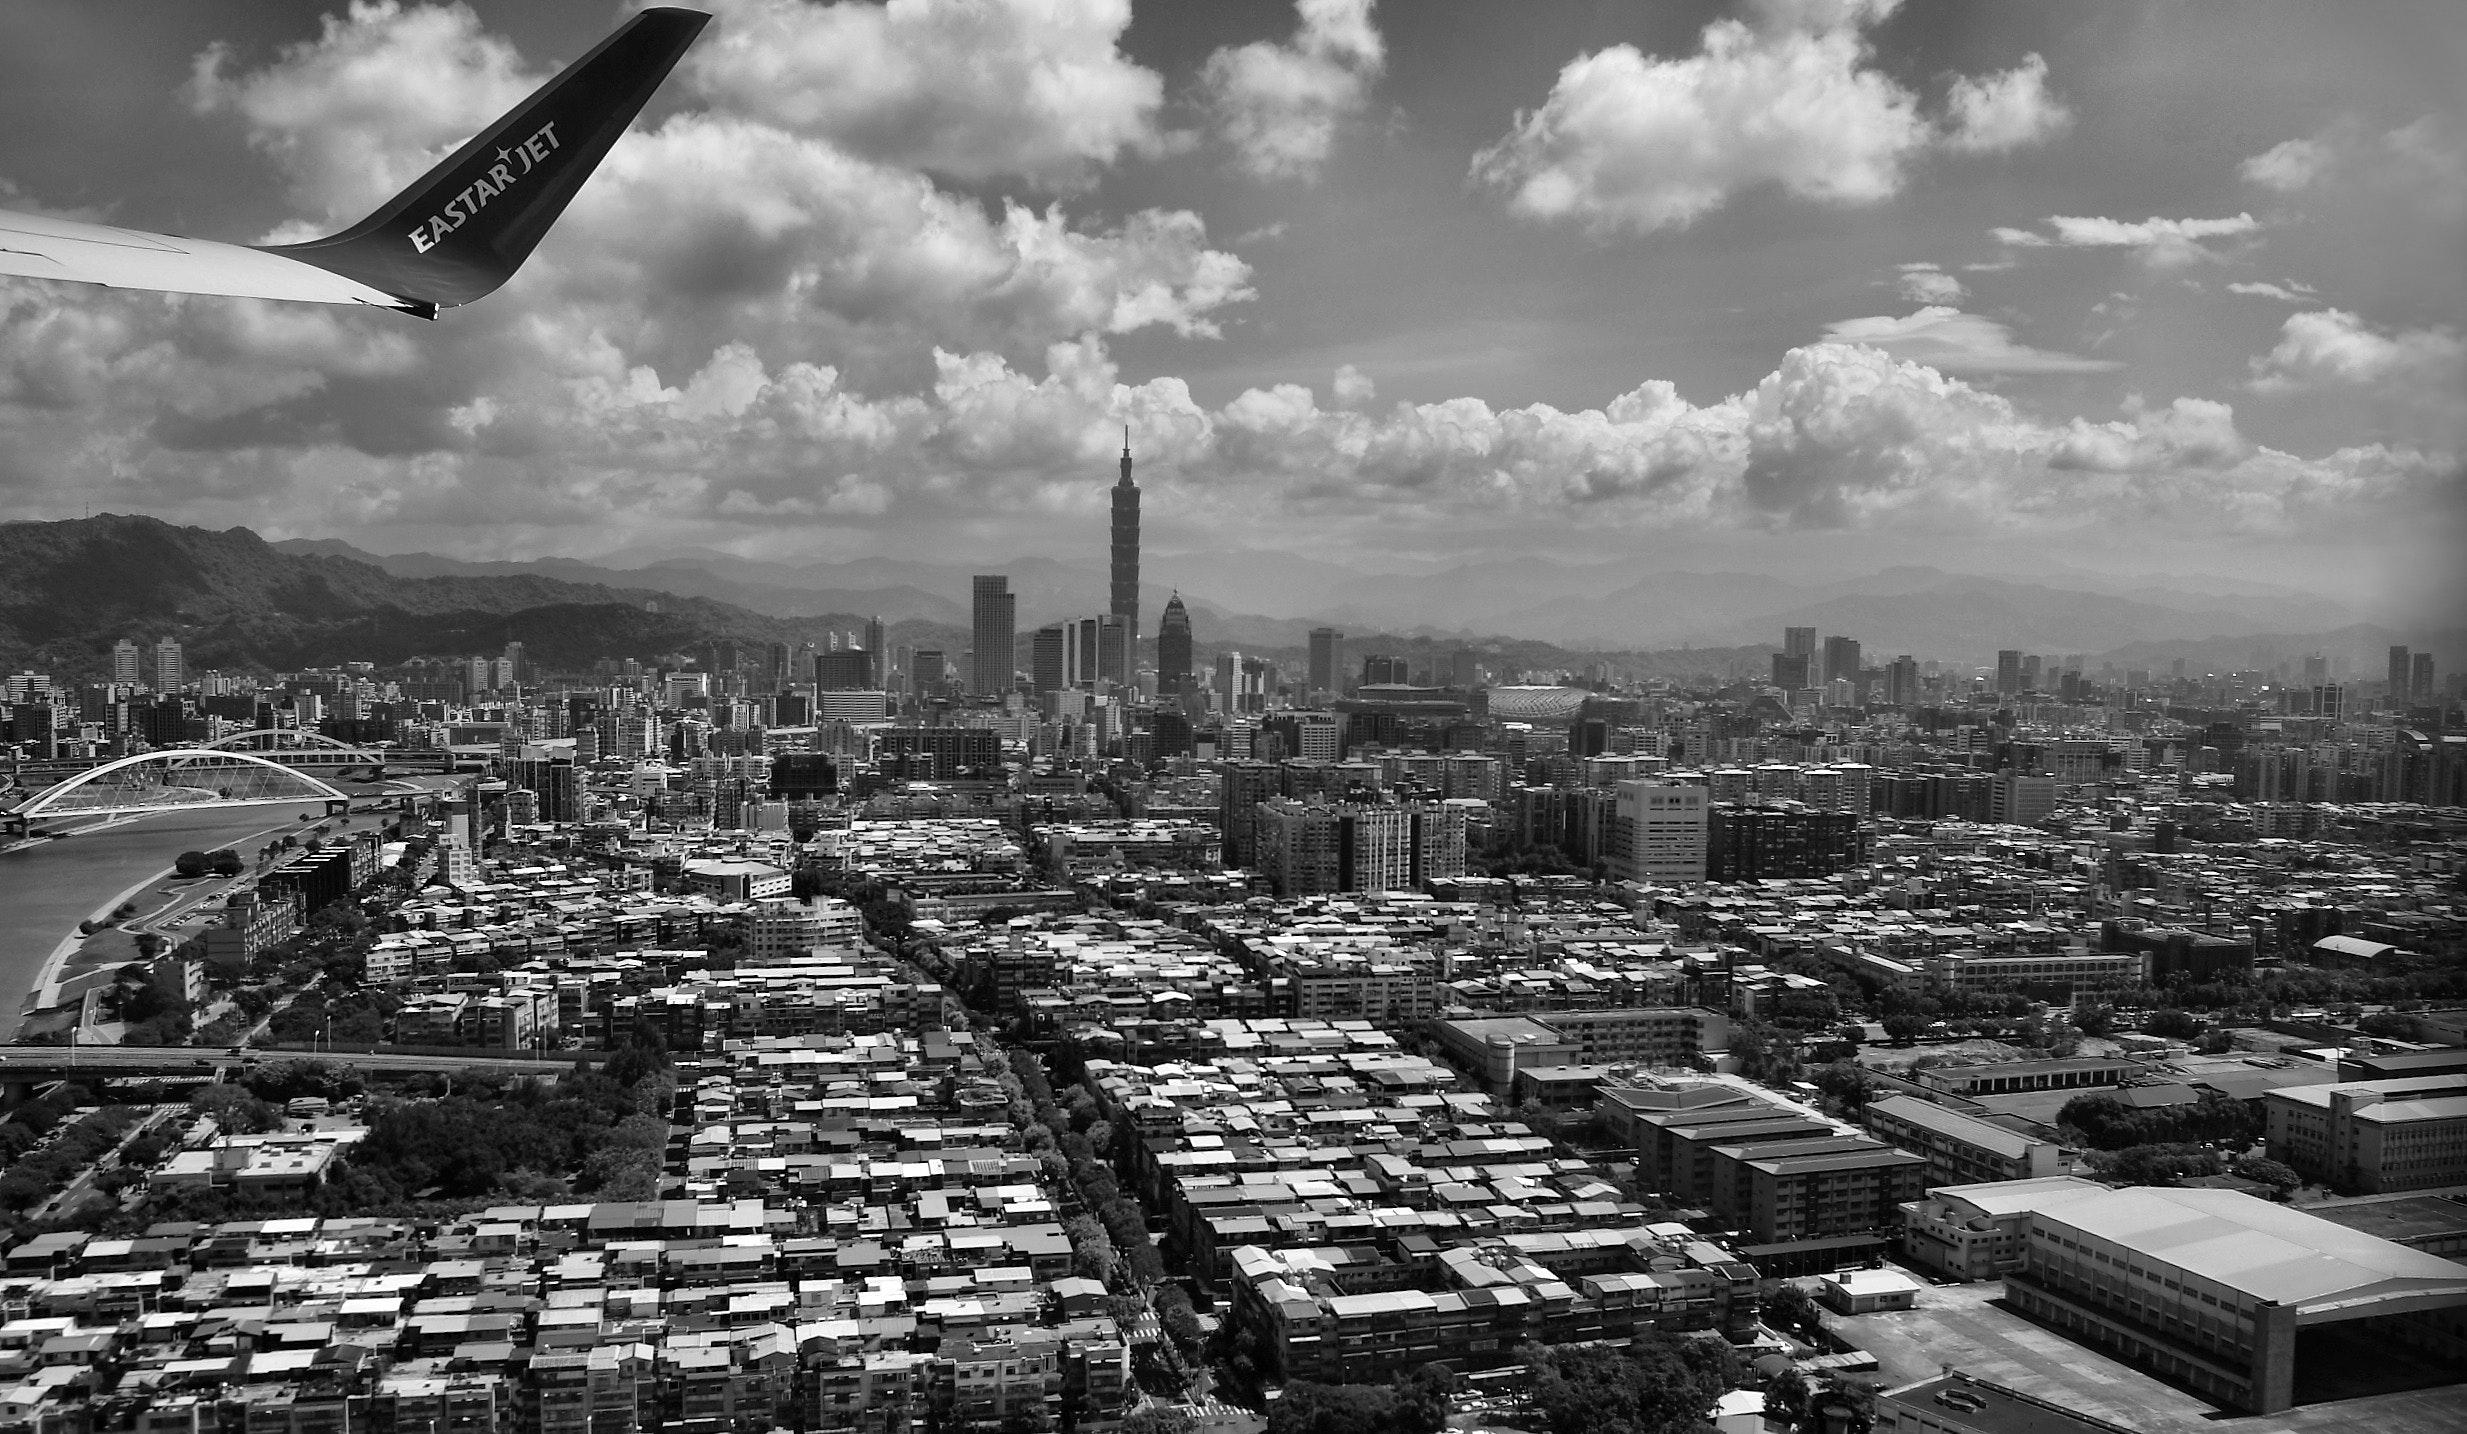 Grayscale Photography of Aerial View of City, Clouds, Travel, City, Buildings, HQ Photo